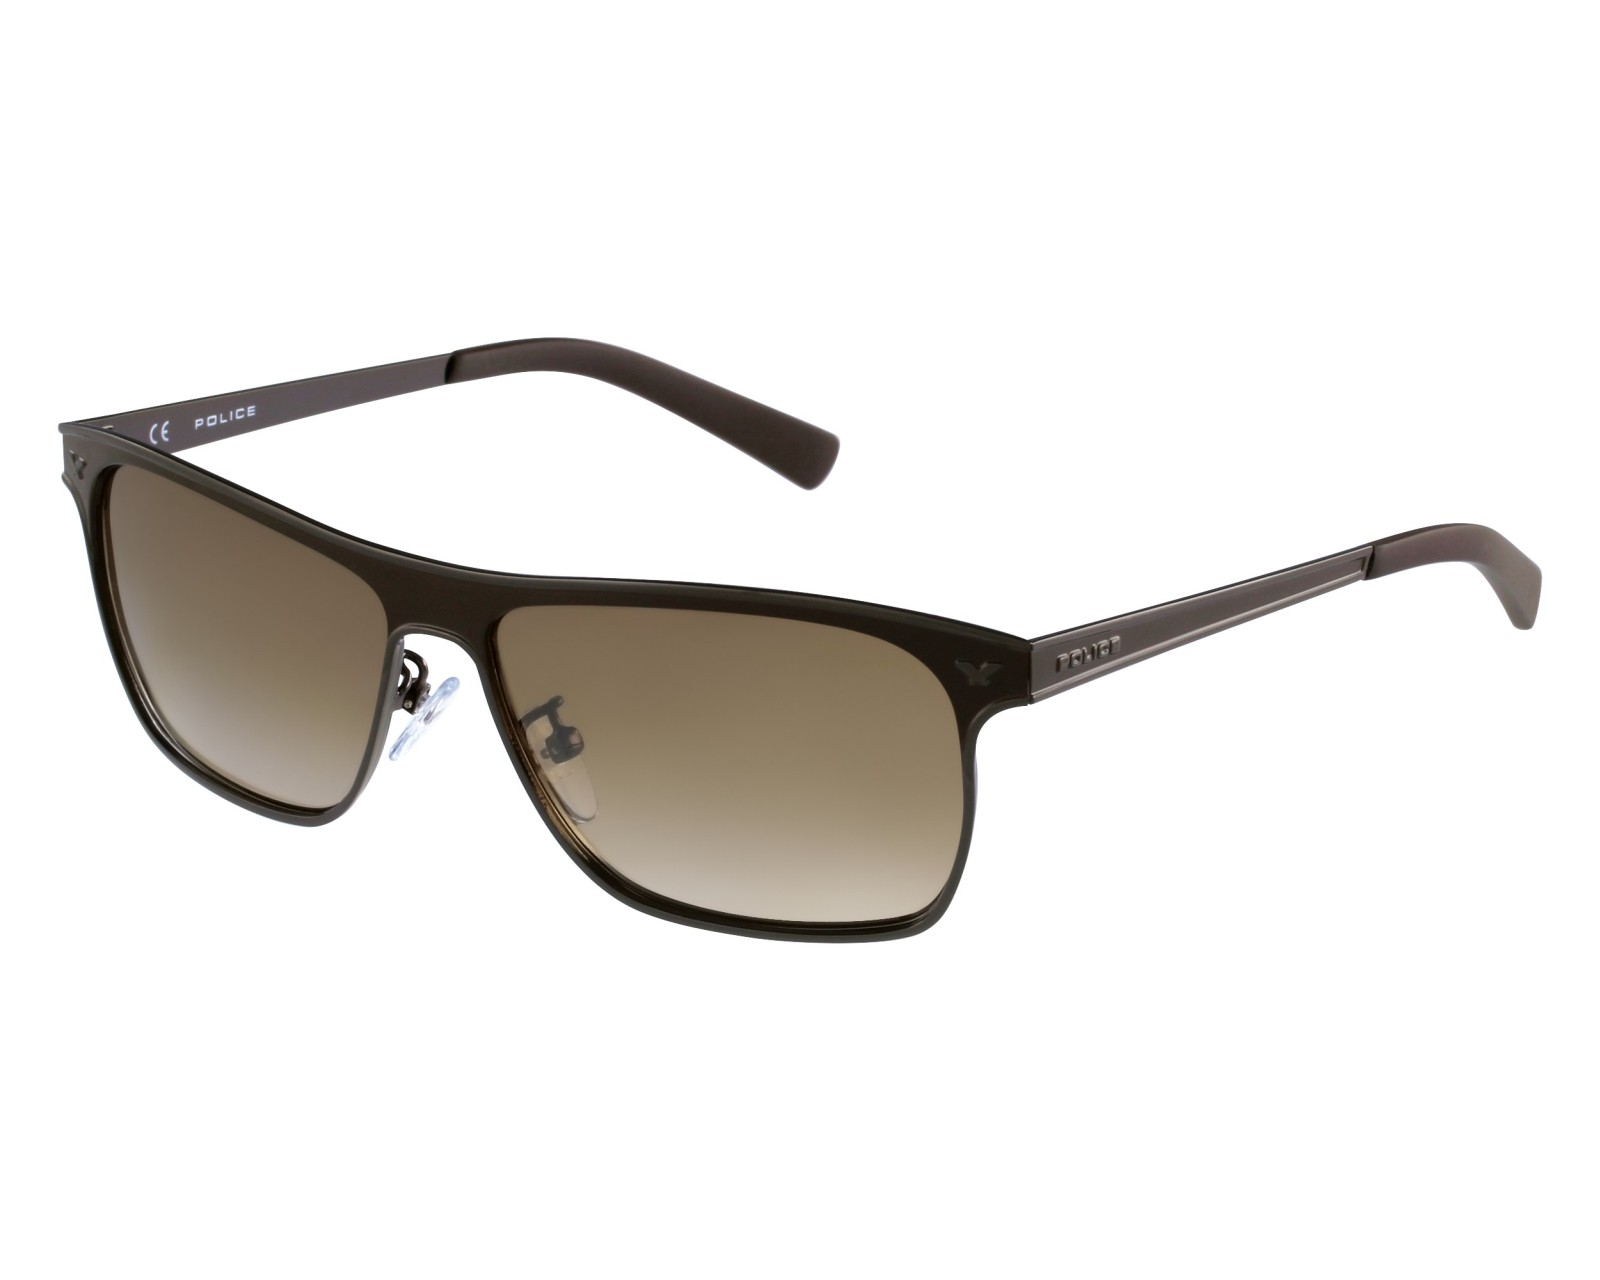 a106bf9b16e Sunglasses Police S-8948 596X 58-13 Brown Black front view